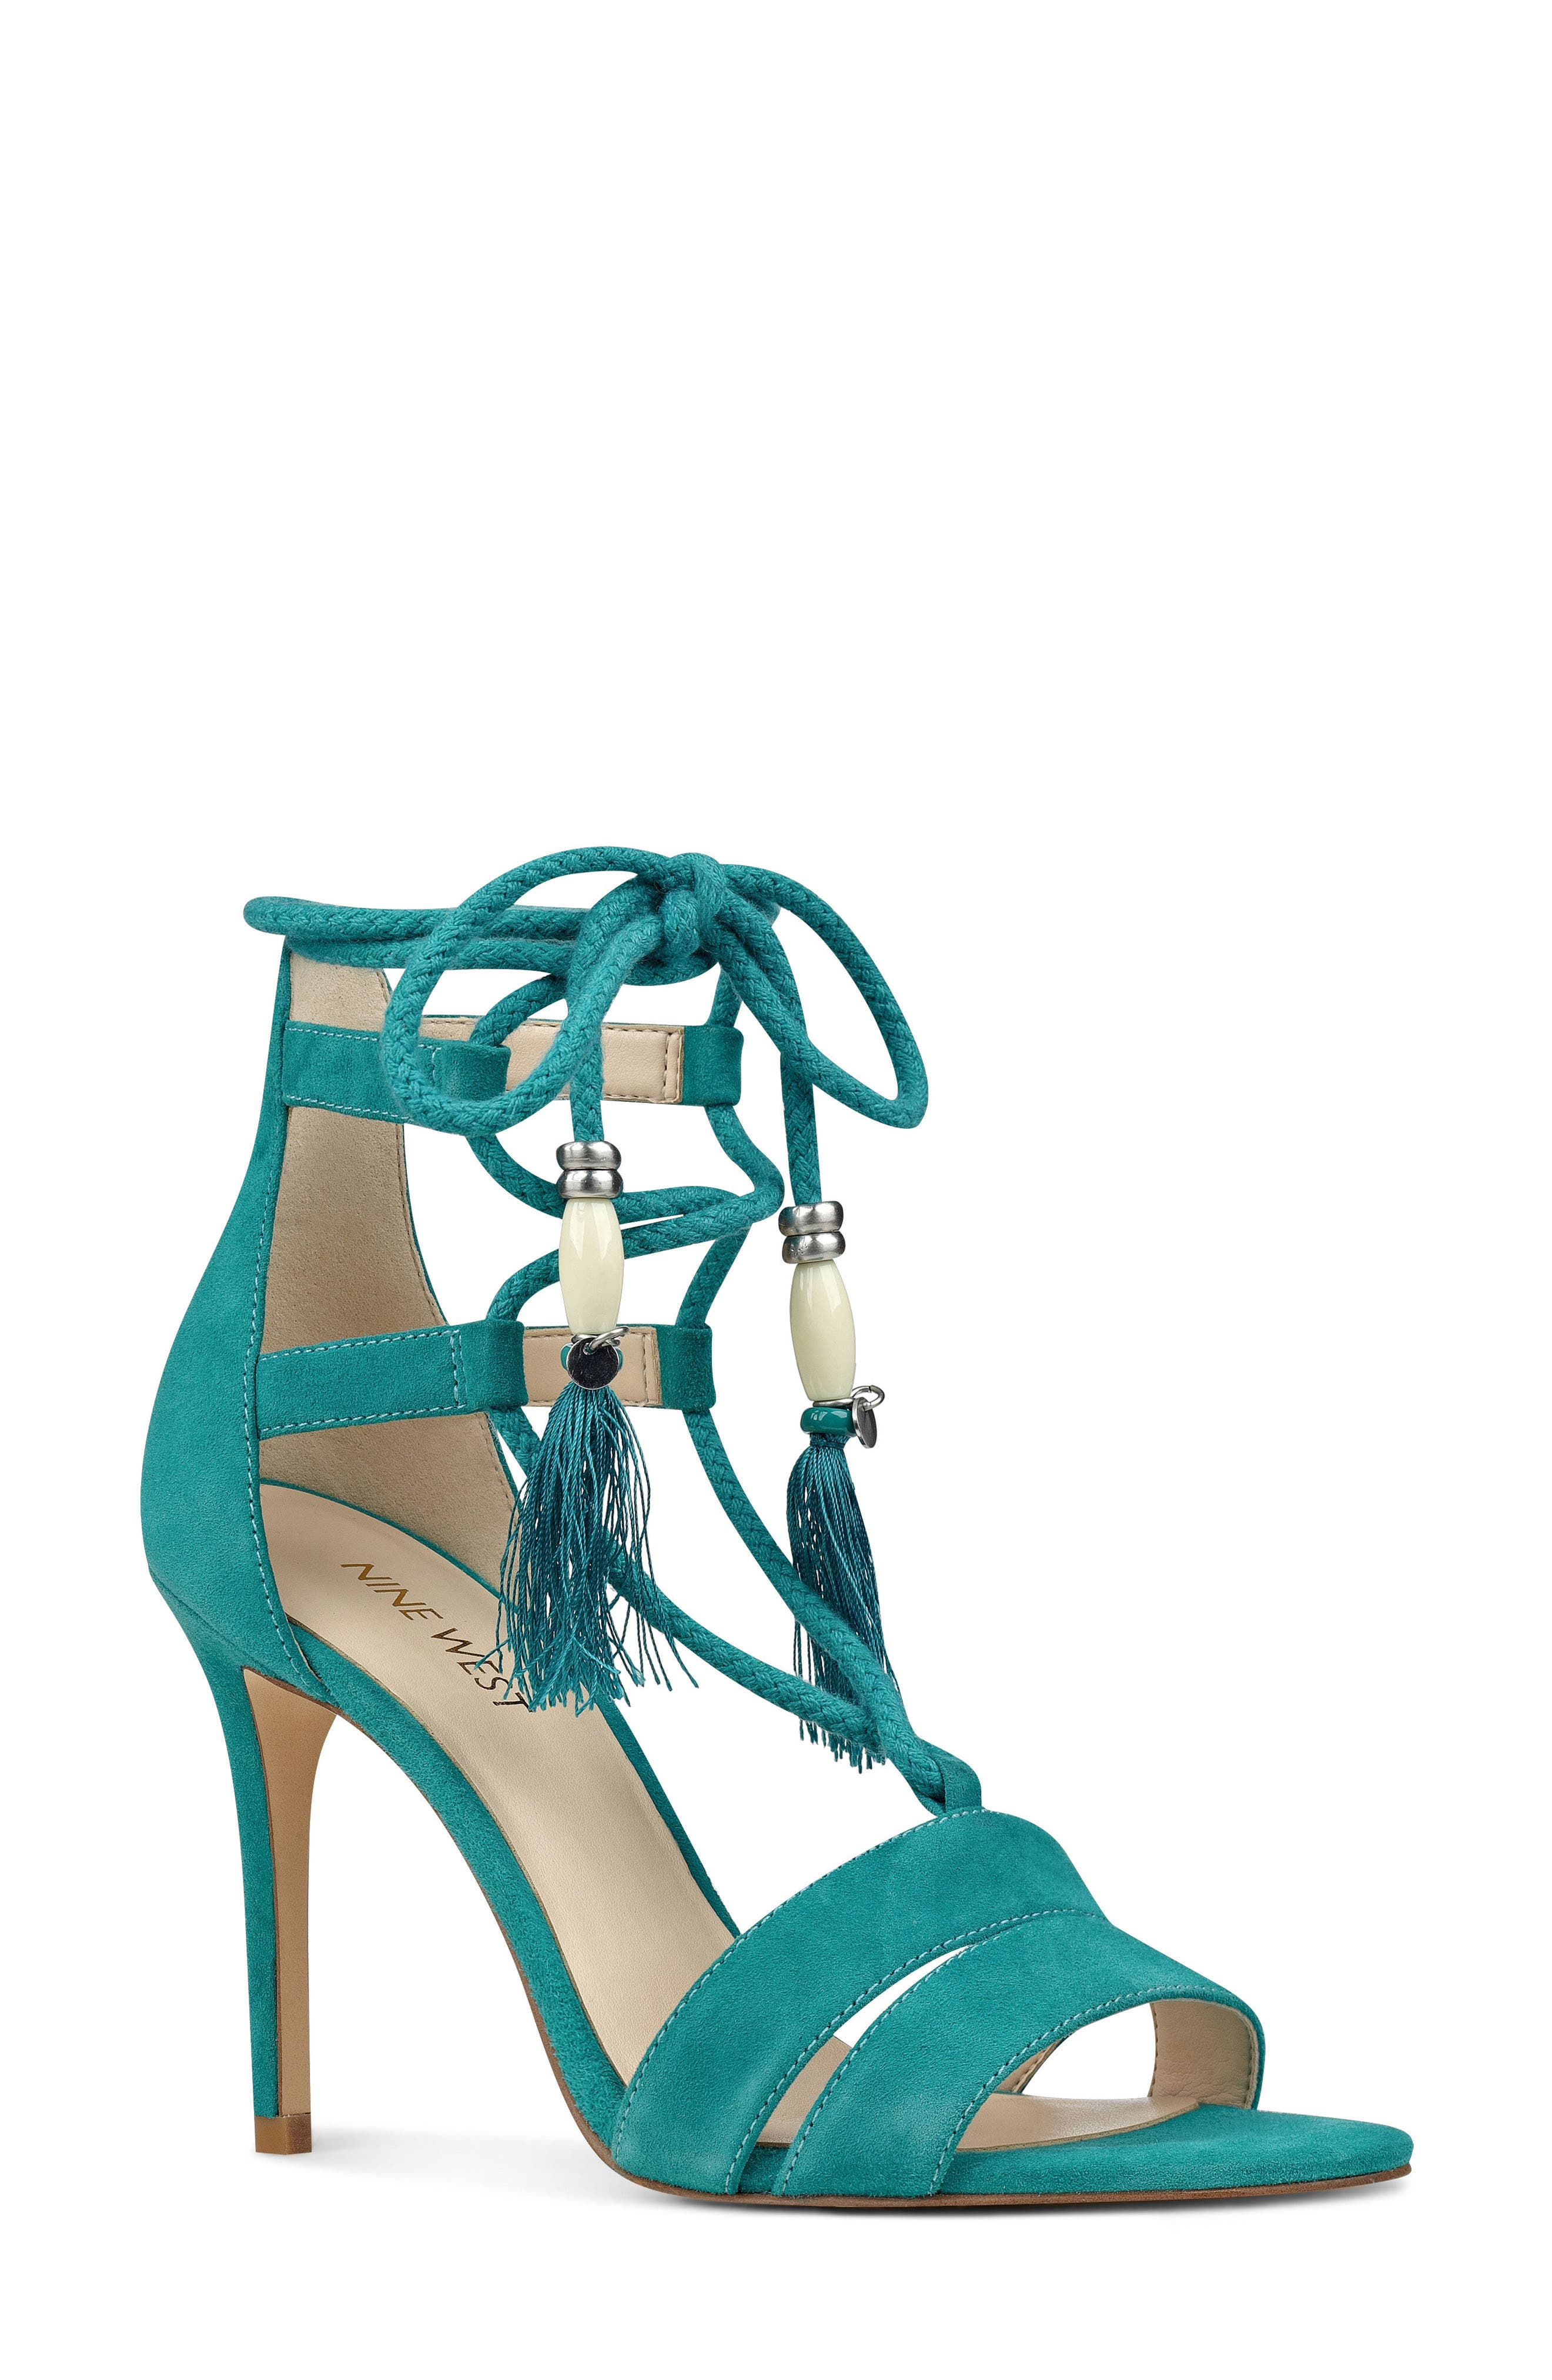 NINE WEST Mangalara Lace-Up Sandal